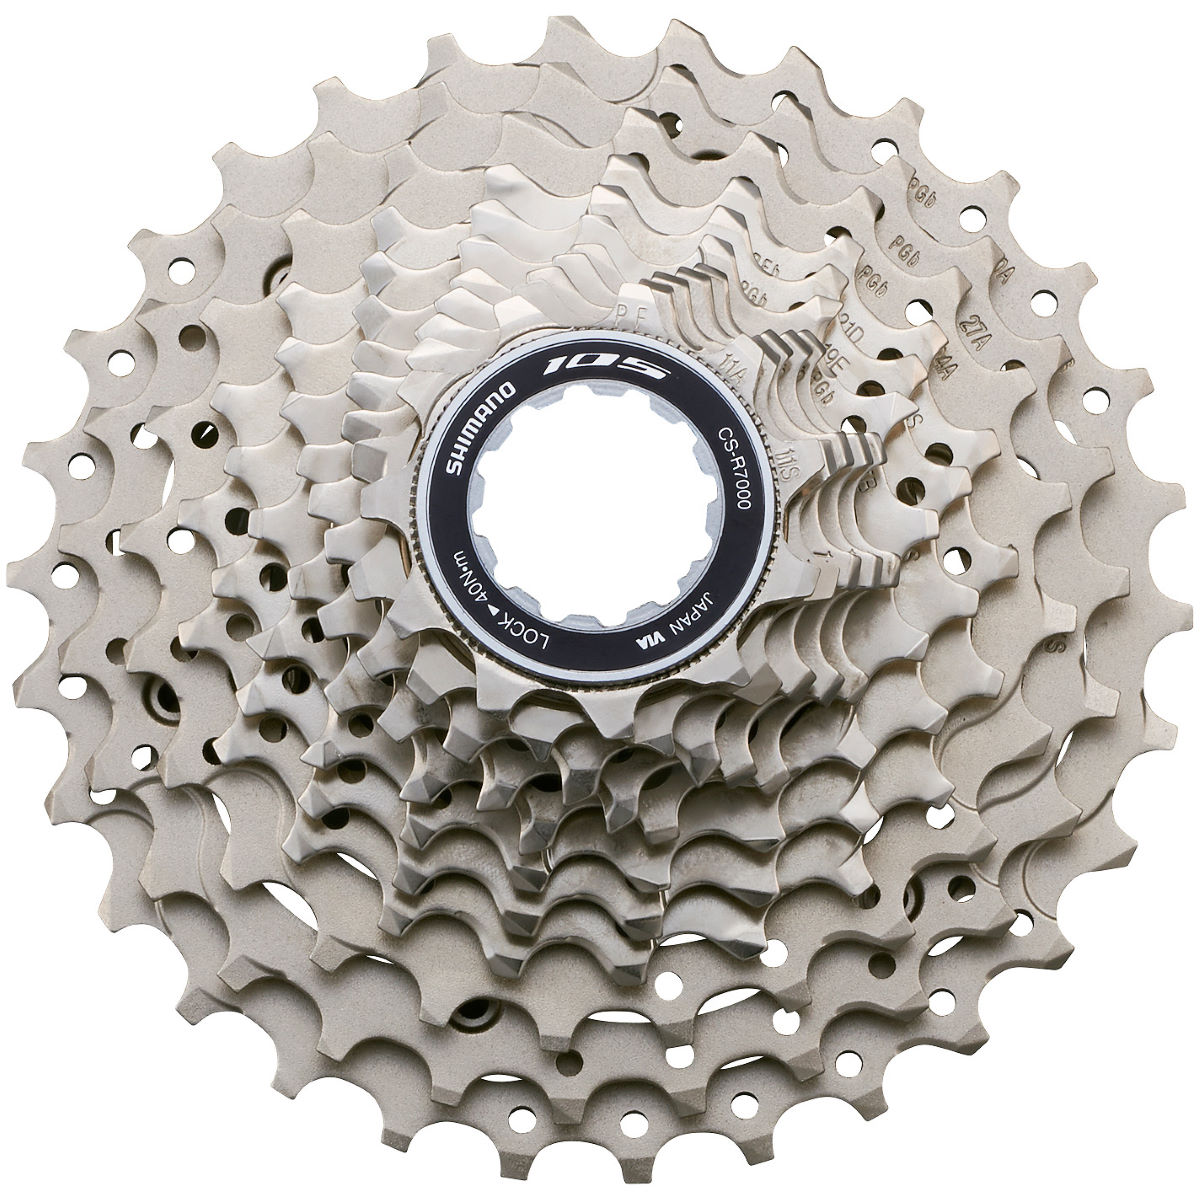 Shimano 105 R7000 11 Speed Cassette   Cassettes